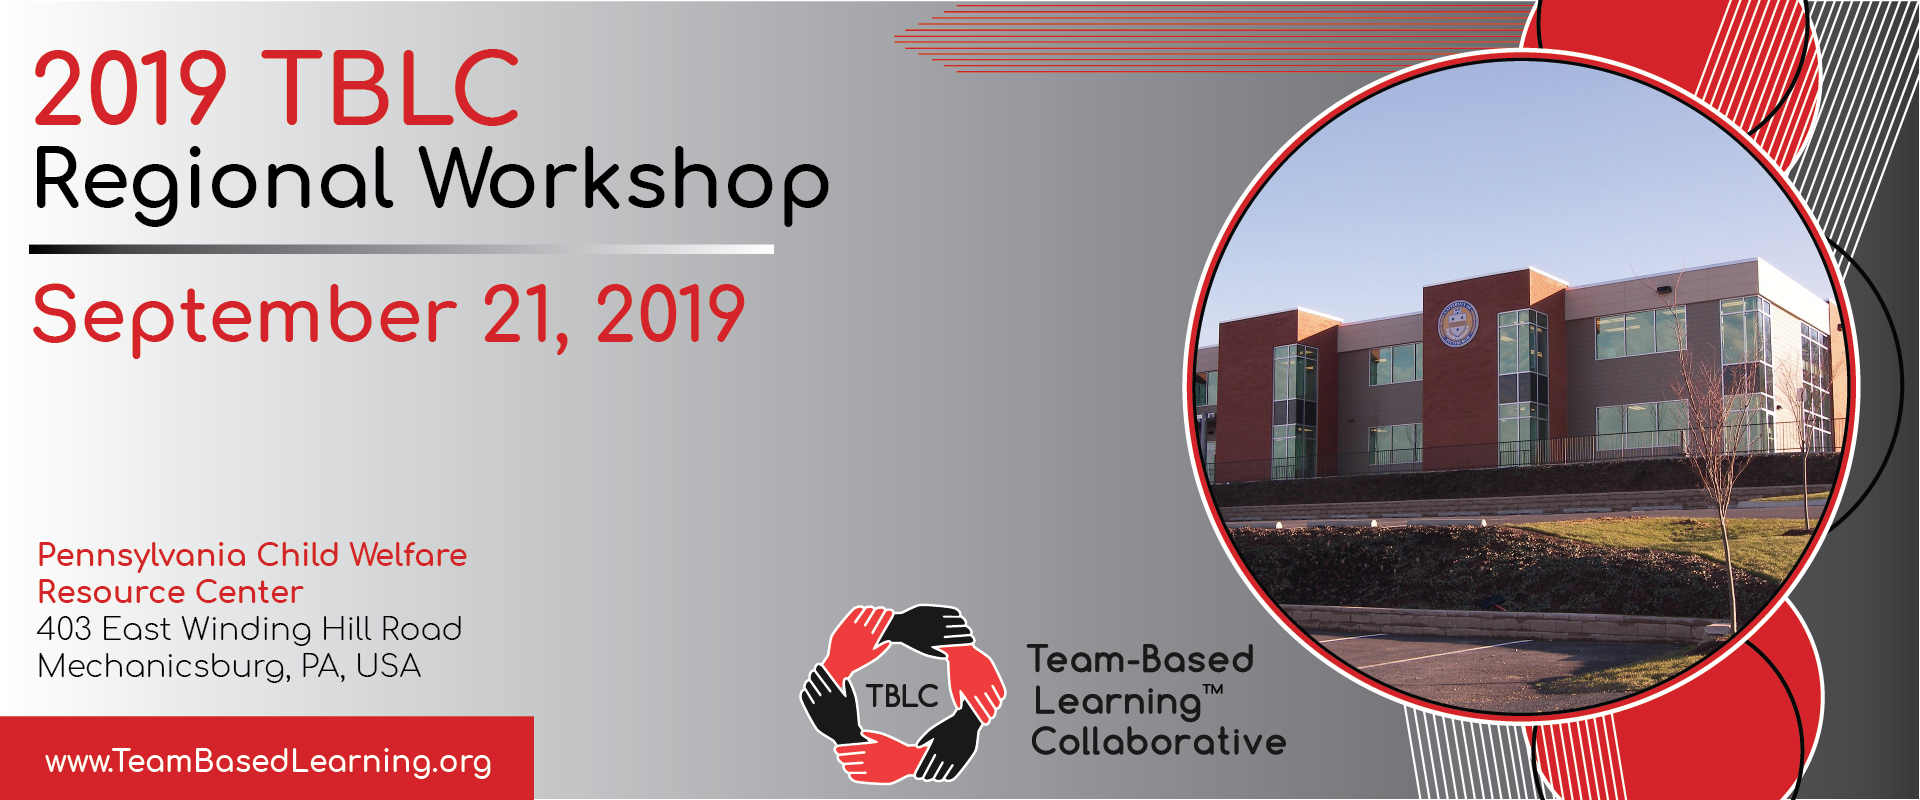 2019 TBLC Regional Workshop - Mechanicsburg, PA